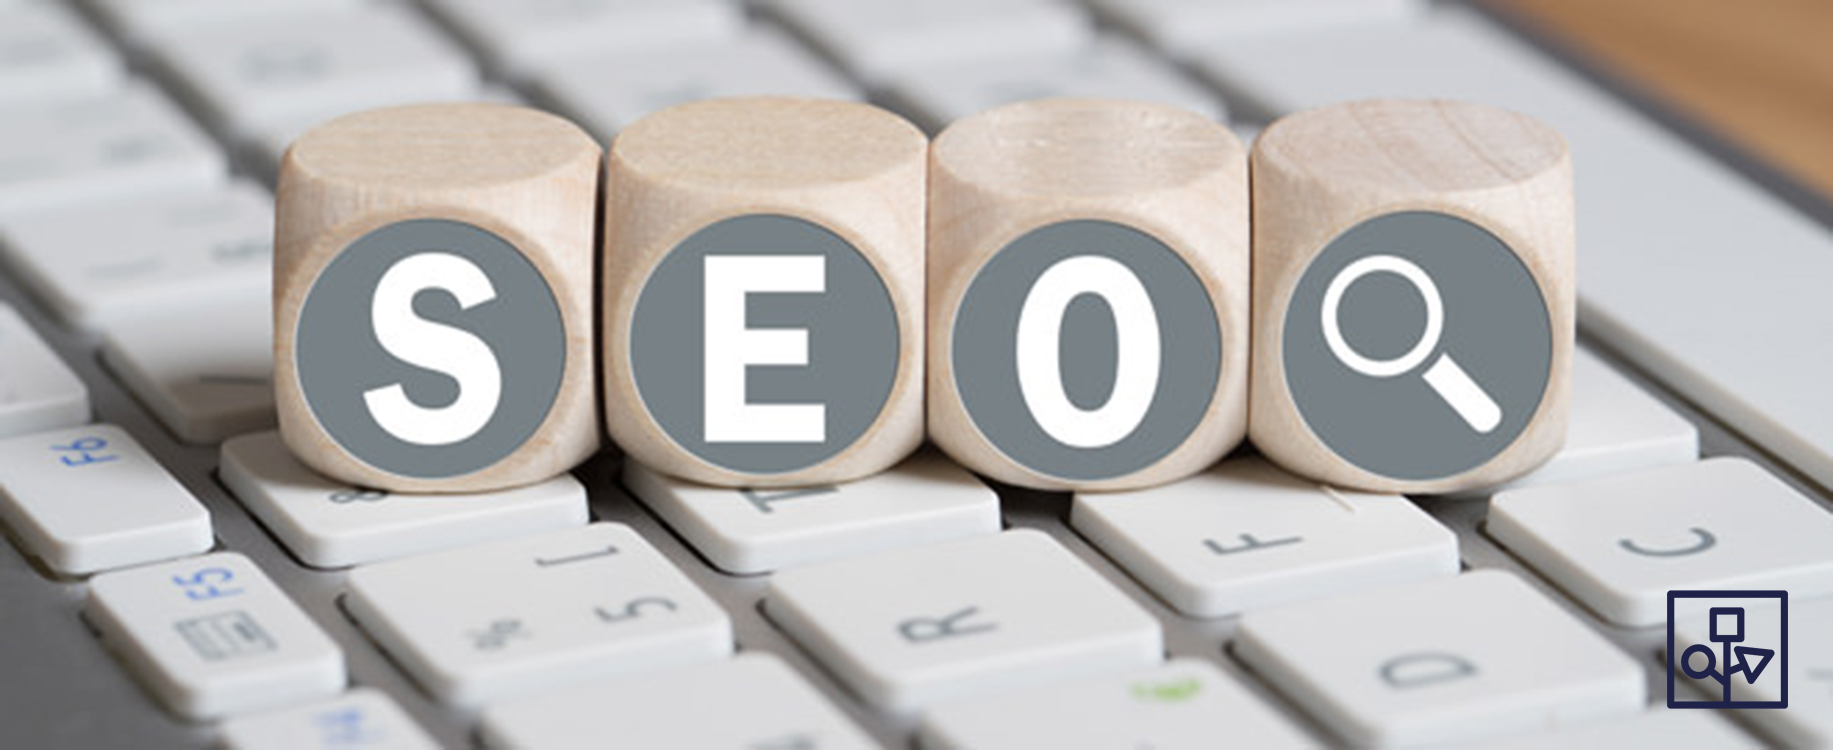 SEO: cos'è e a cosa serve